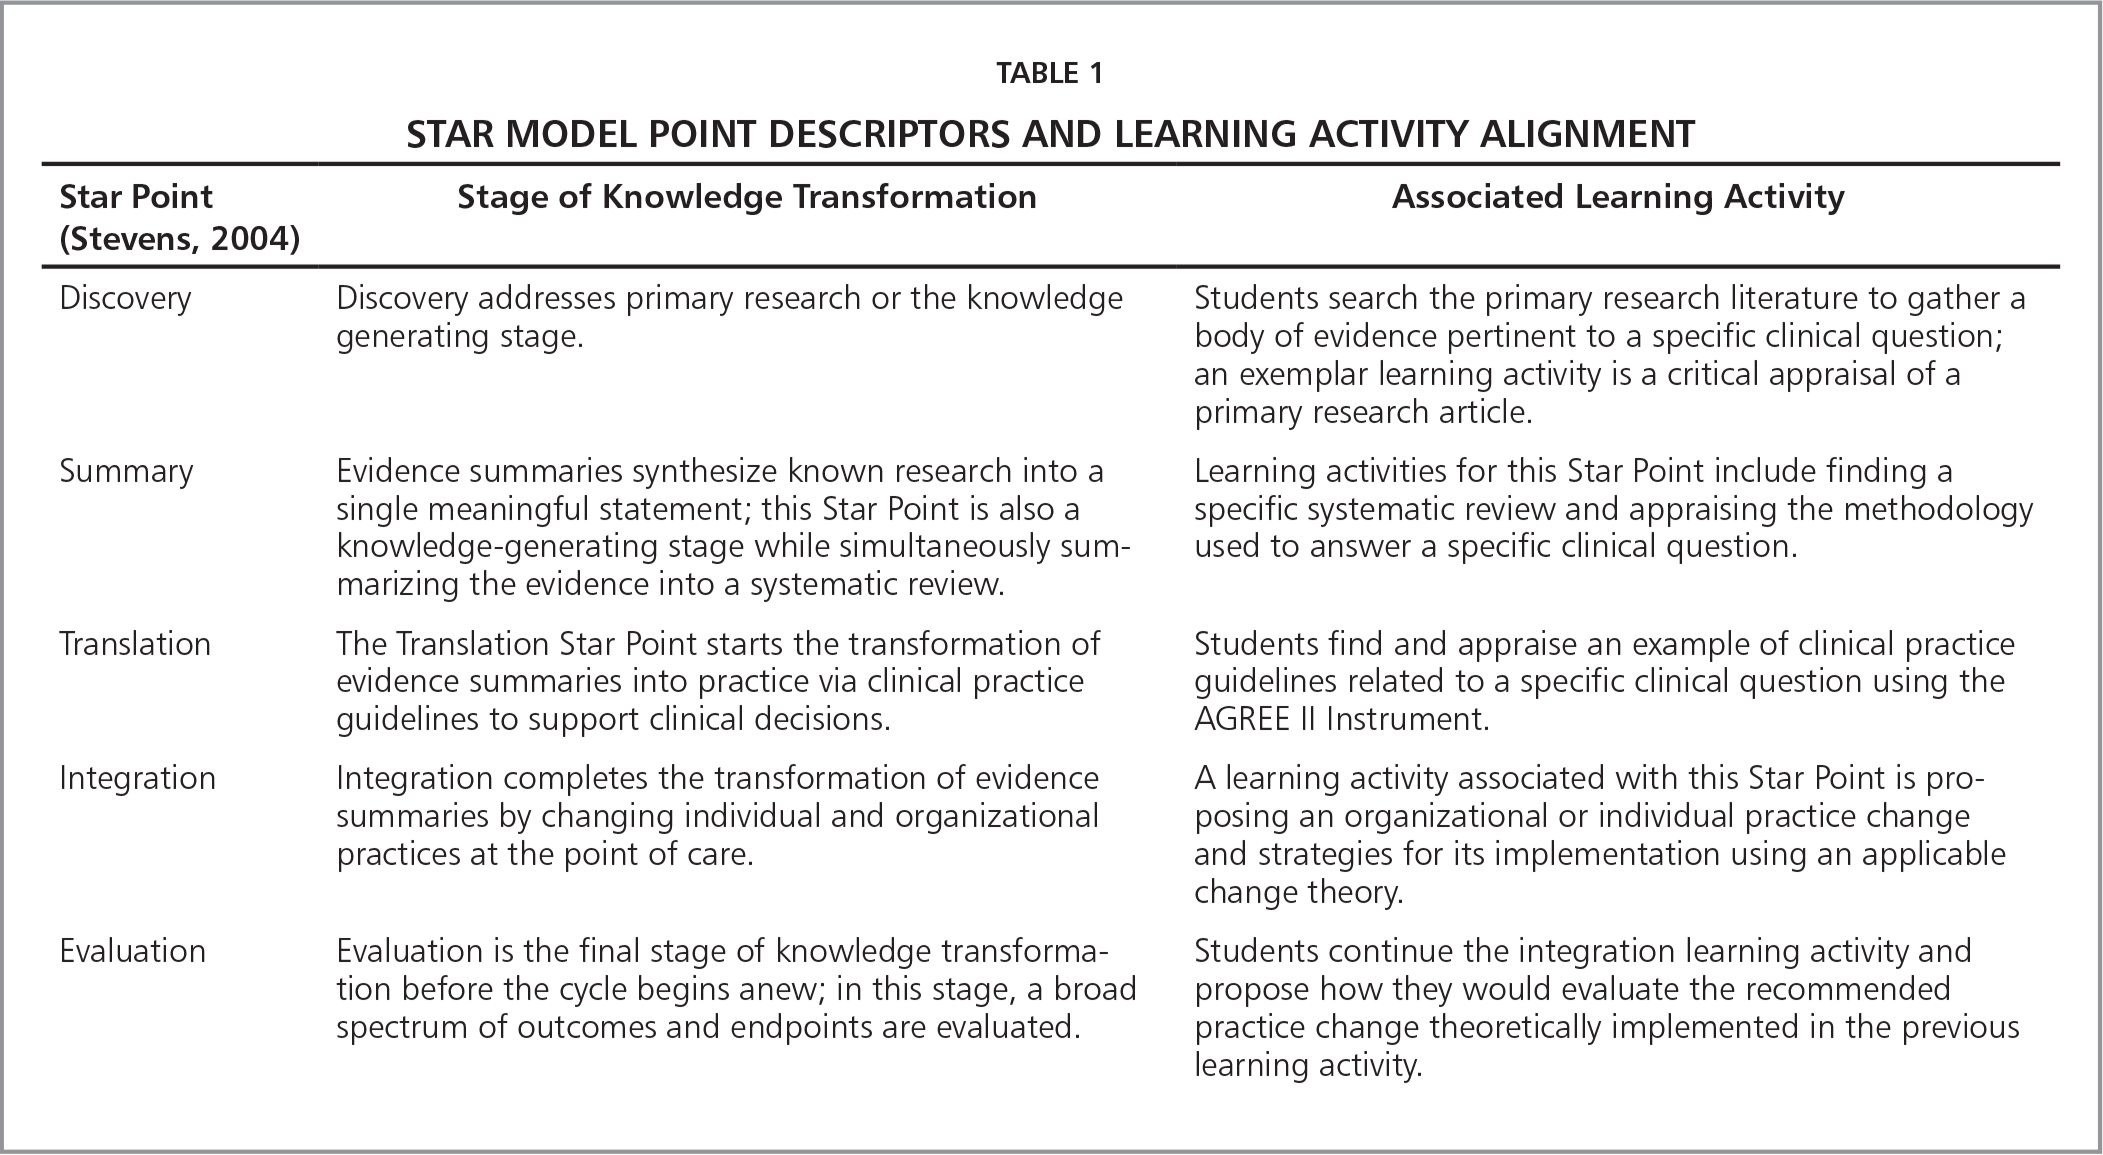 Star Model Point Descriptors and Learning Activity Alignment